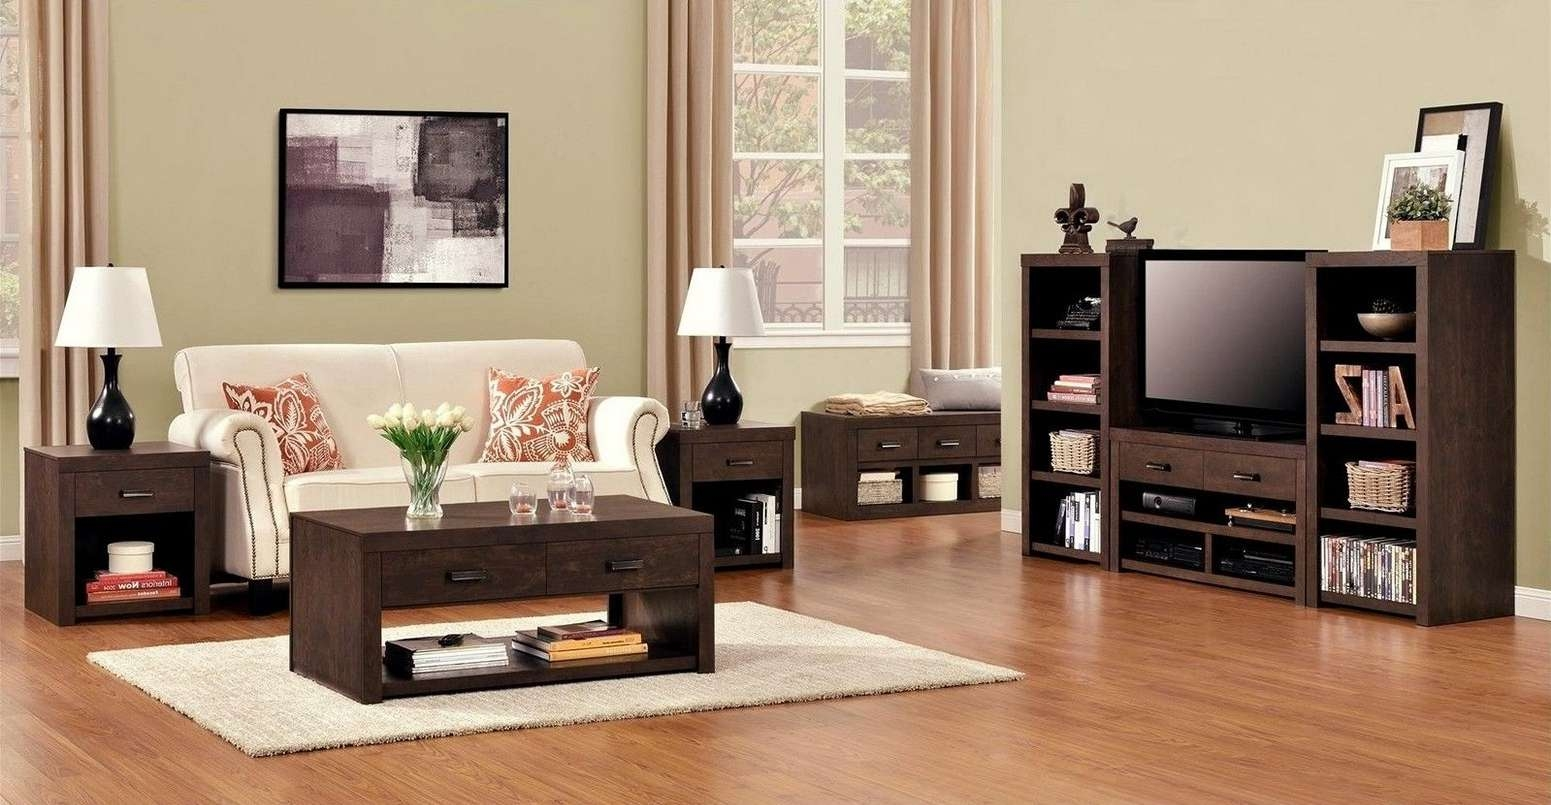 Tv Stand Ideas, Unique Tv Stand Stands For Sale Furniture For Unique Tv Stands For Flat Screens (View 2 of 20)